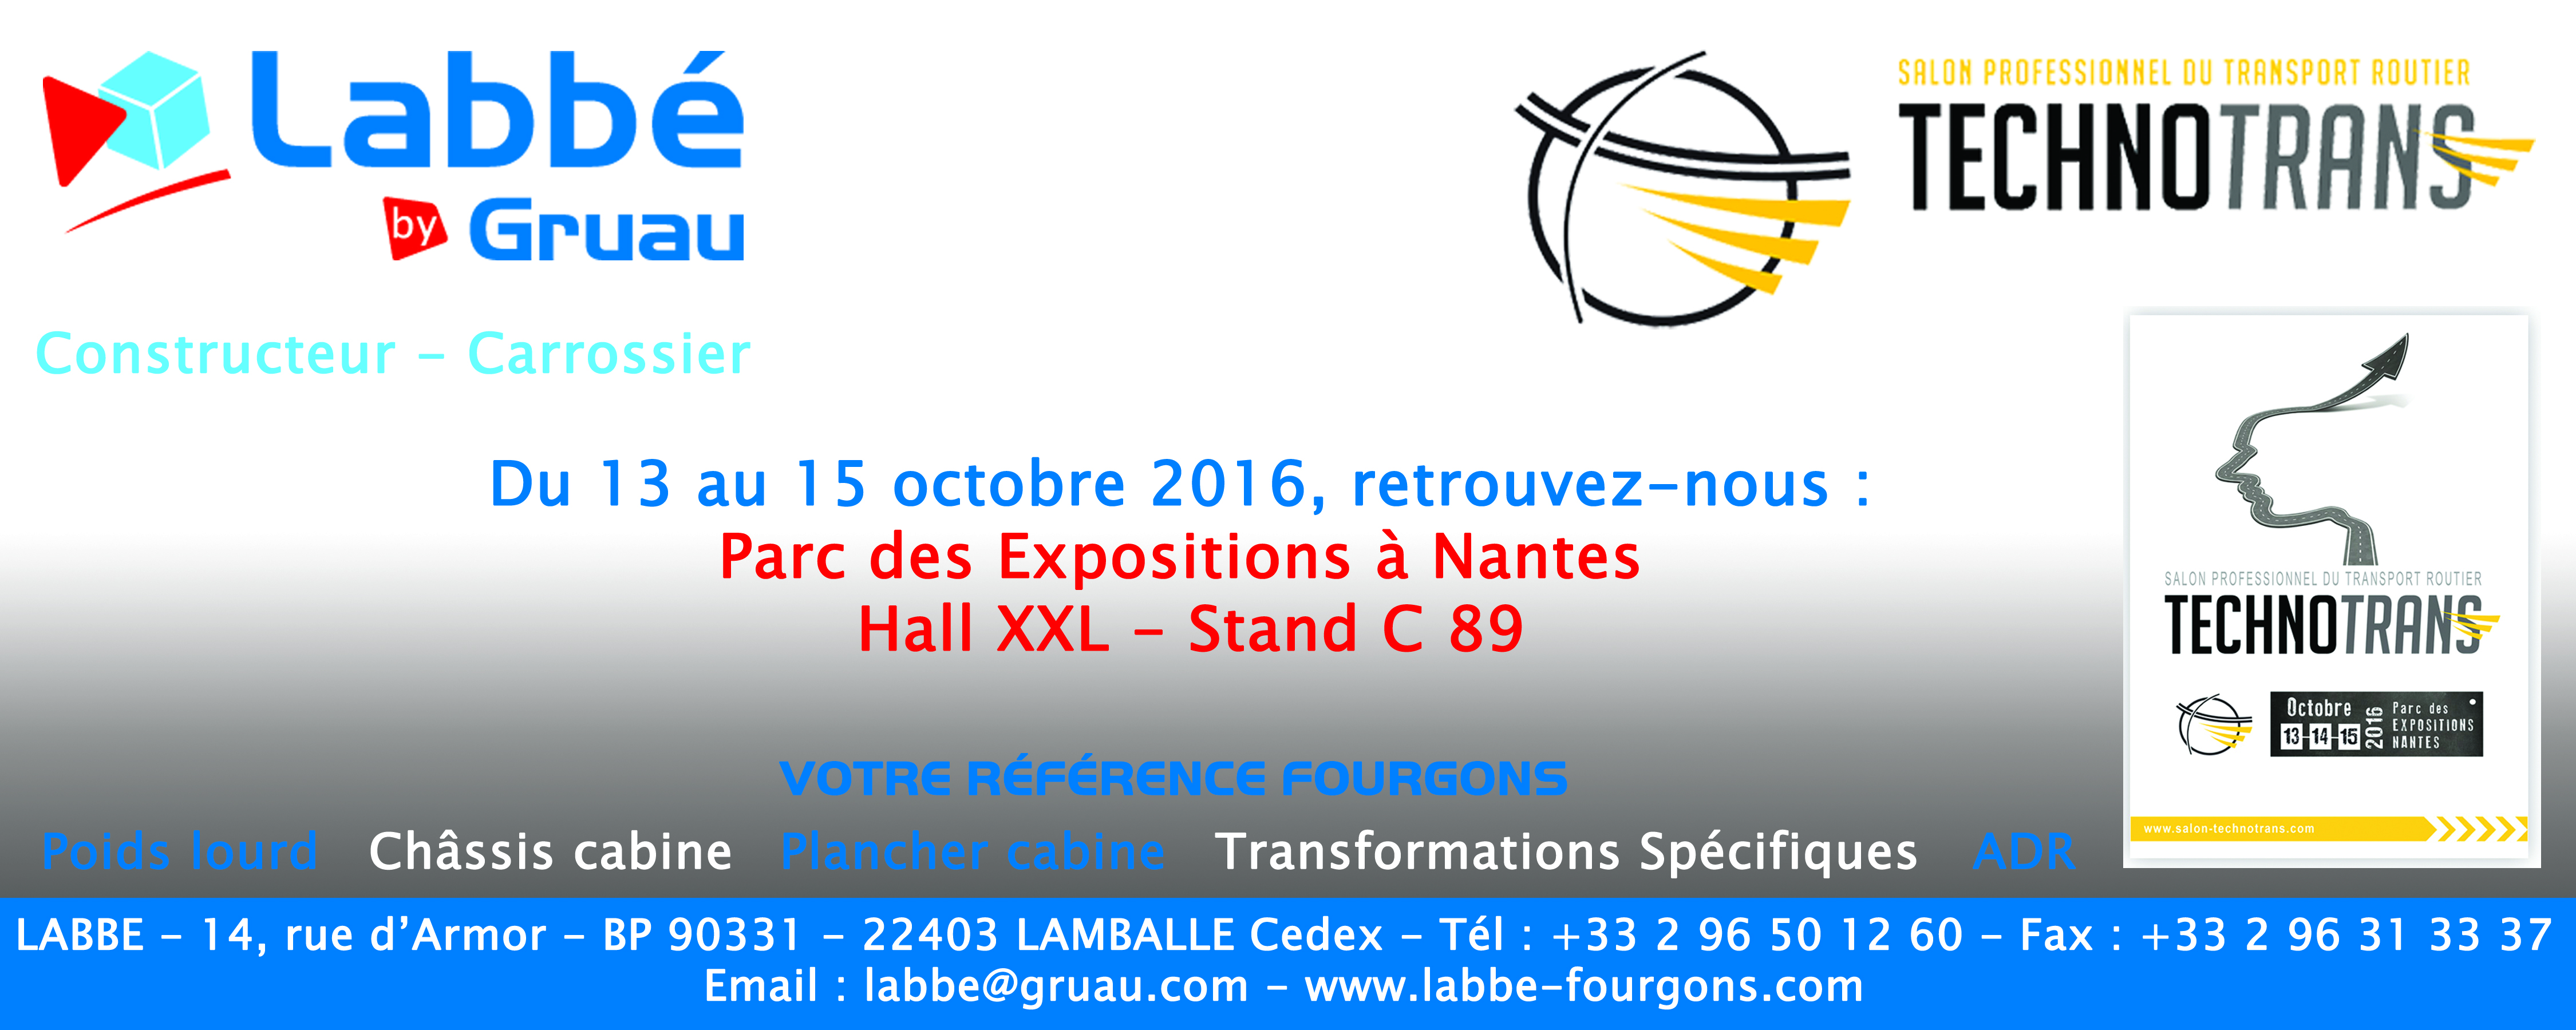 Bandeau LABBE by GRUAU pour salon Technotrans 2016